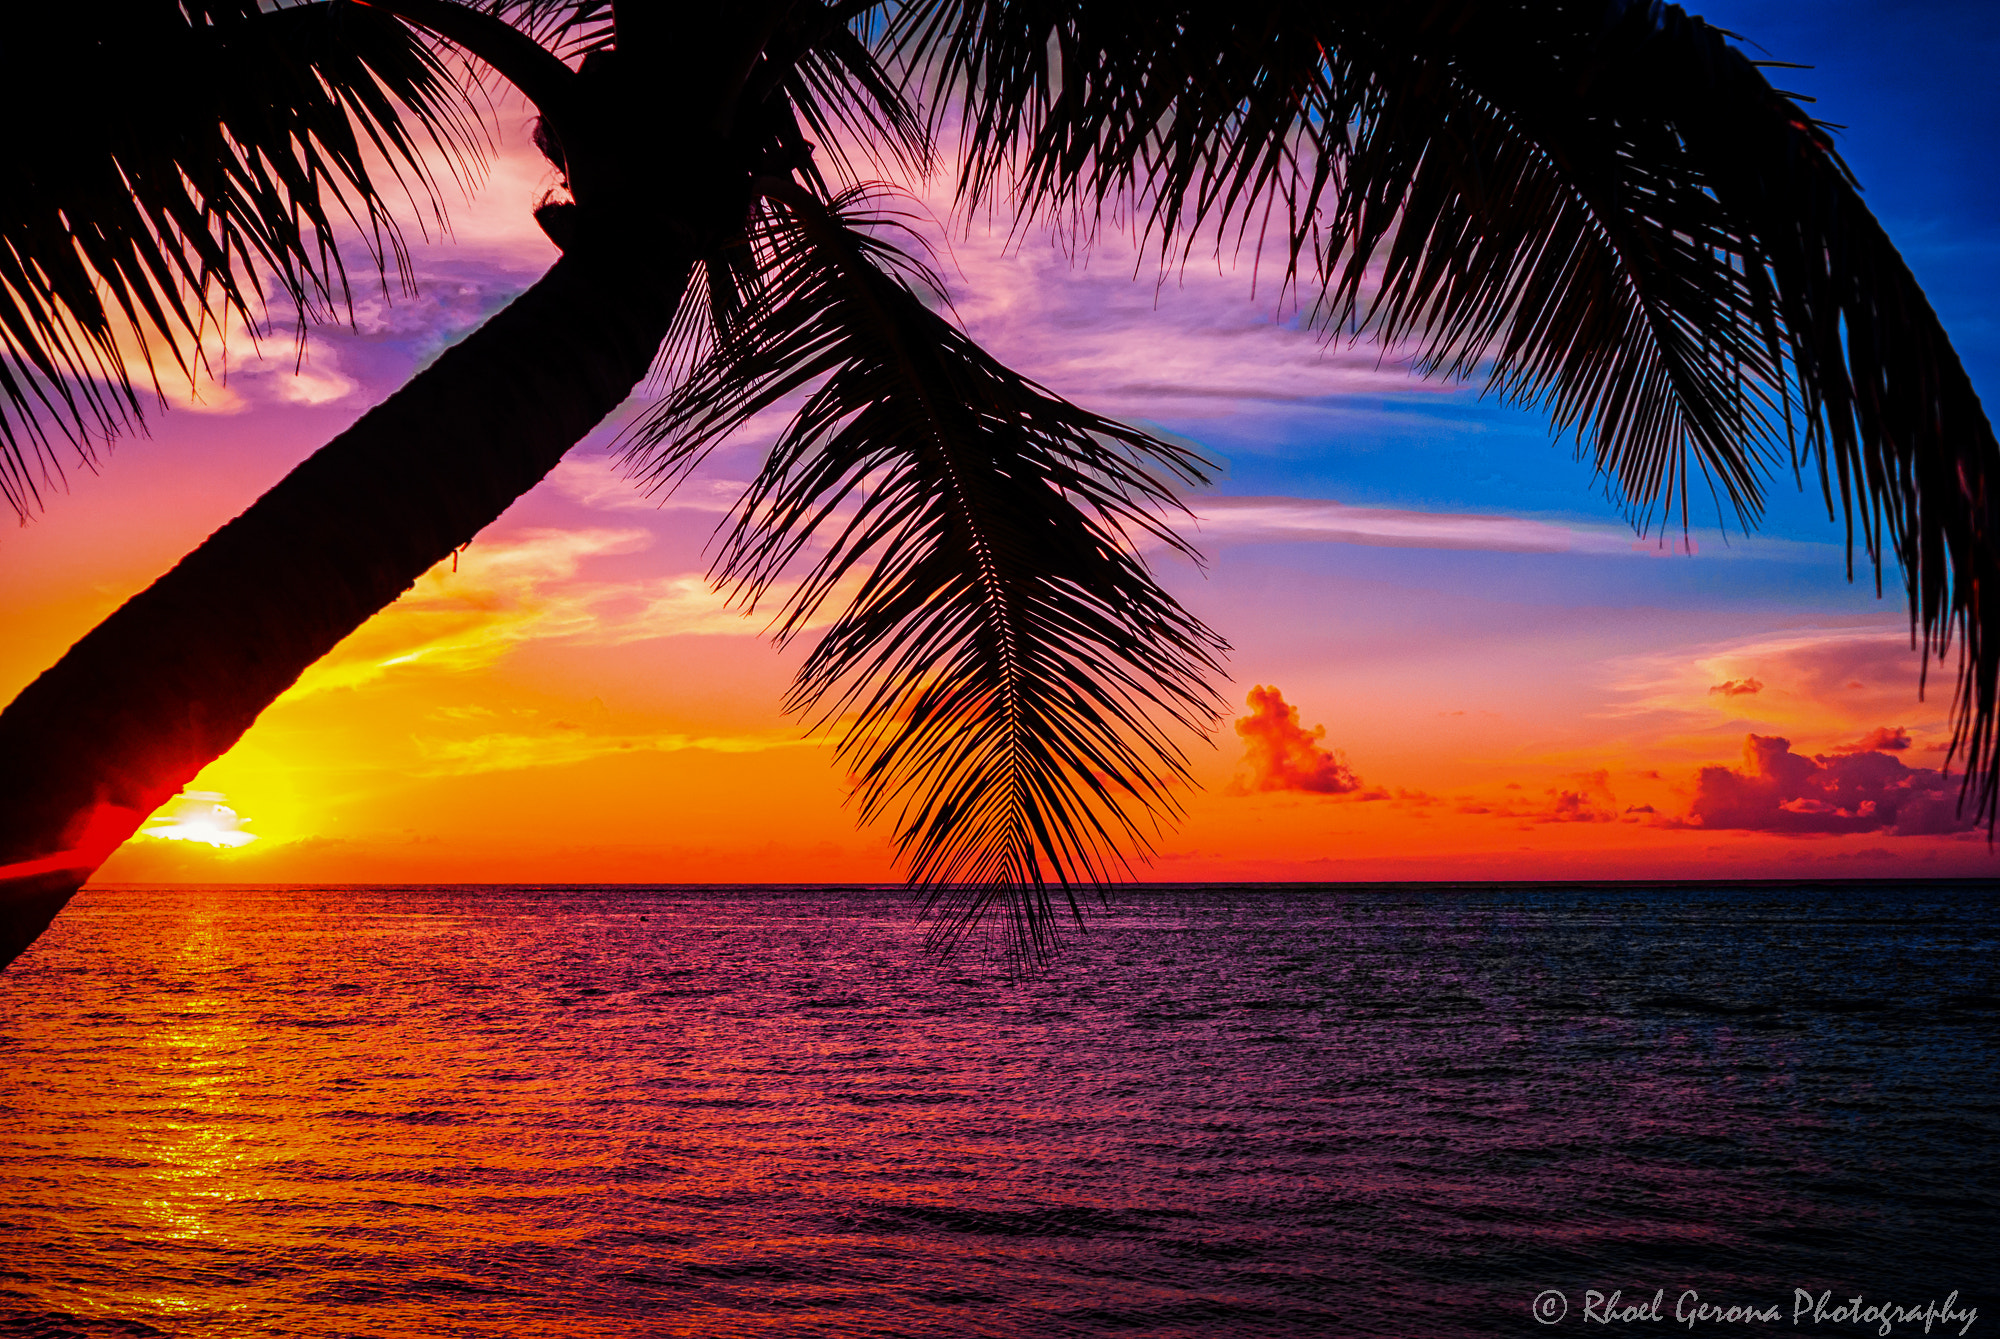 Tropical Island Sunset: Tropical Island Sunset By Rhoel Gerona / 500px